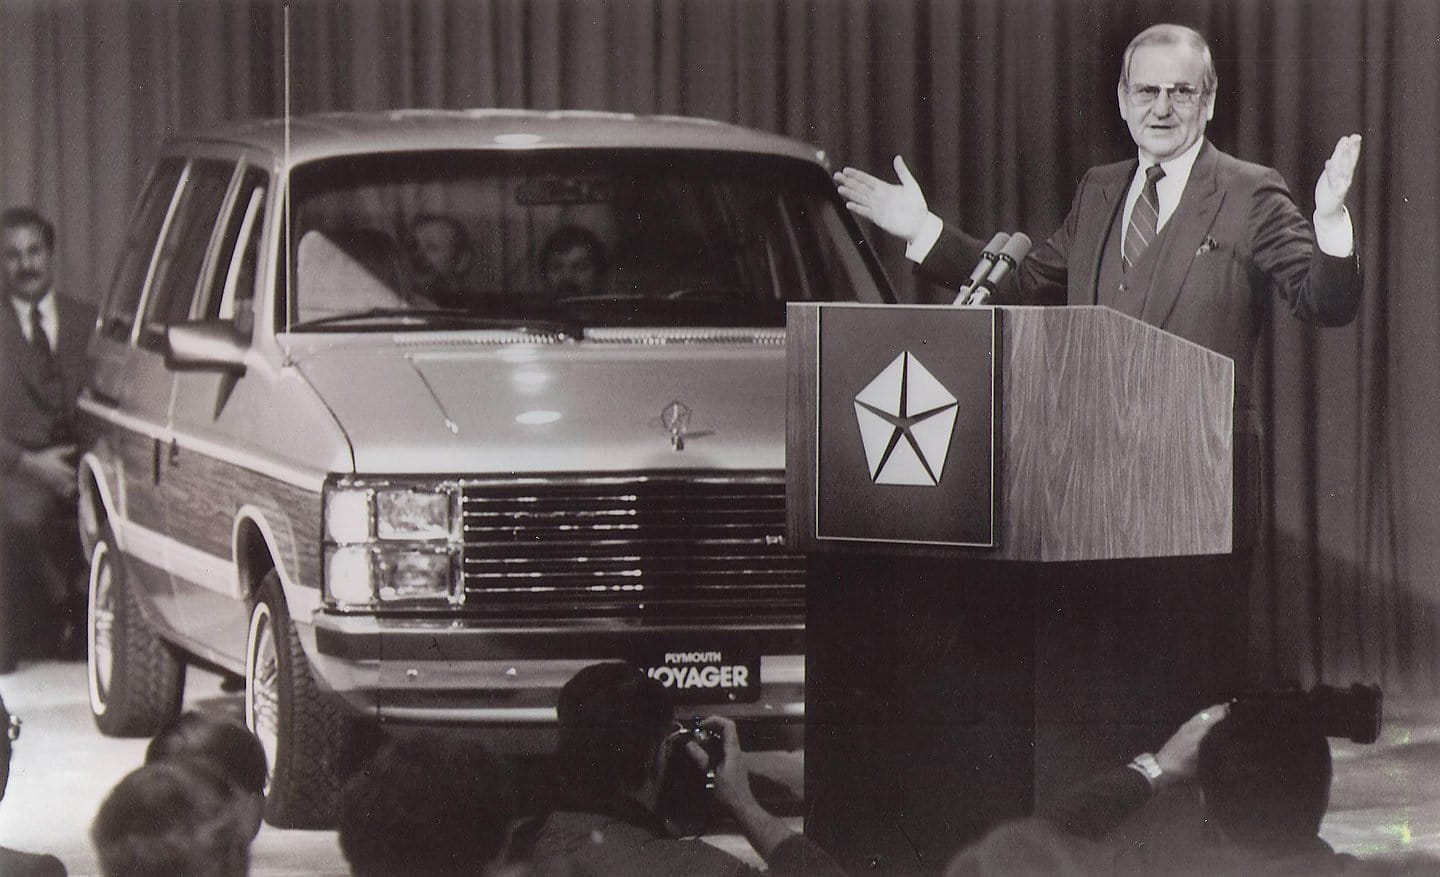 Lee Iacocca, then chairman of Chrysler Corporation, introduced the company's new breed of garageable 1984 front-wheel-drive family wagons and vans, the Plymouth Voyager, Dodge Caravan and Dodge Mini Ram Van